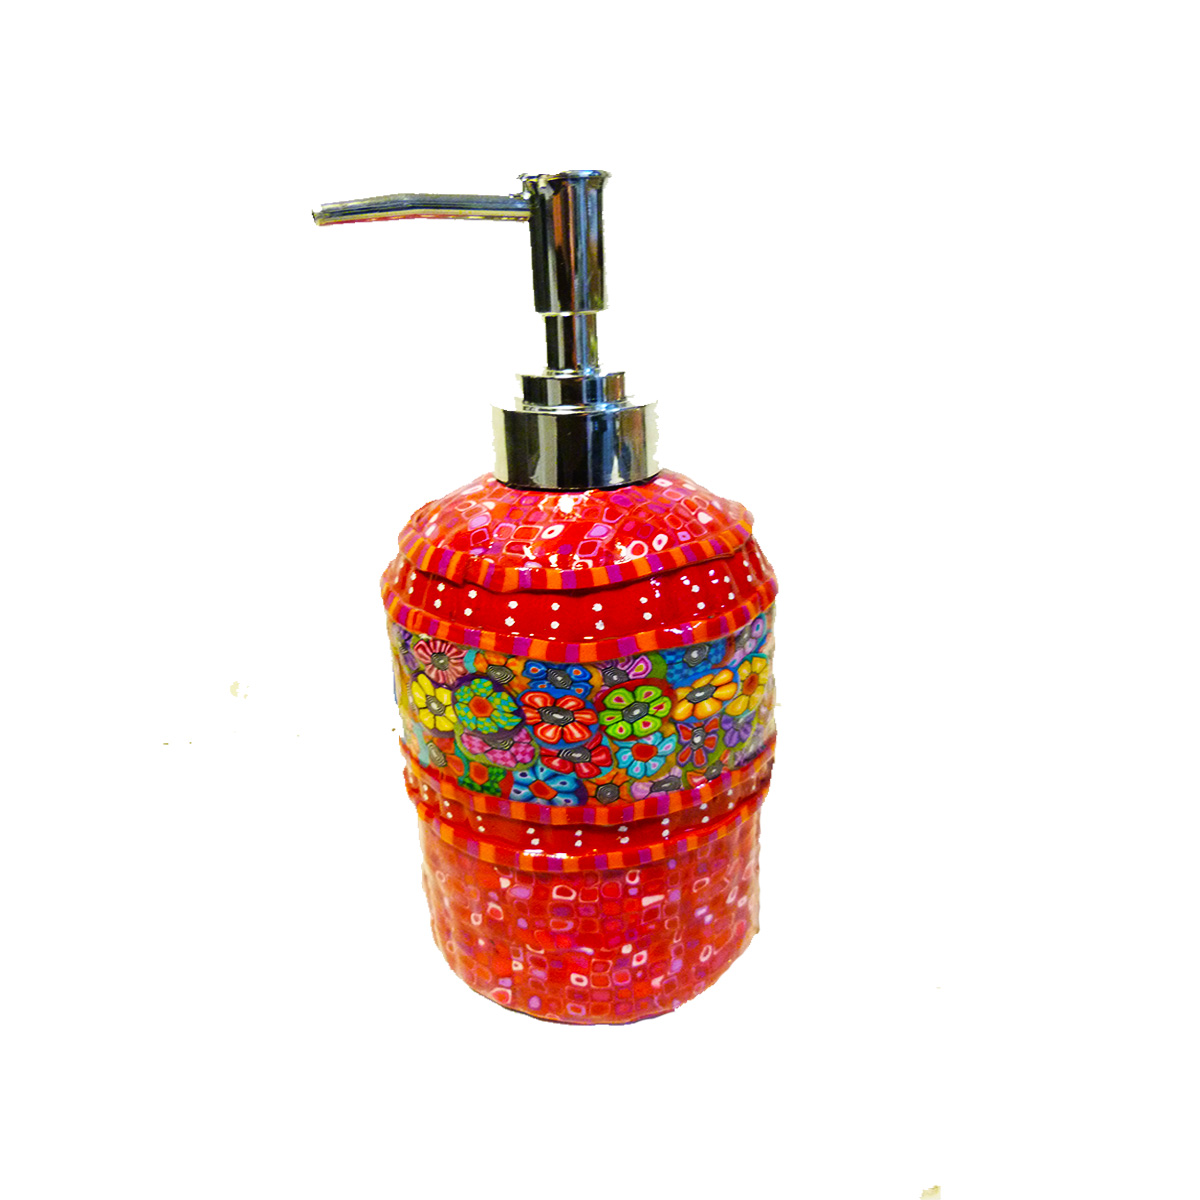 Colorful liquid Hand Soap Dispenser With Pump